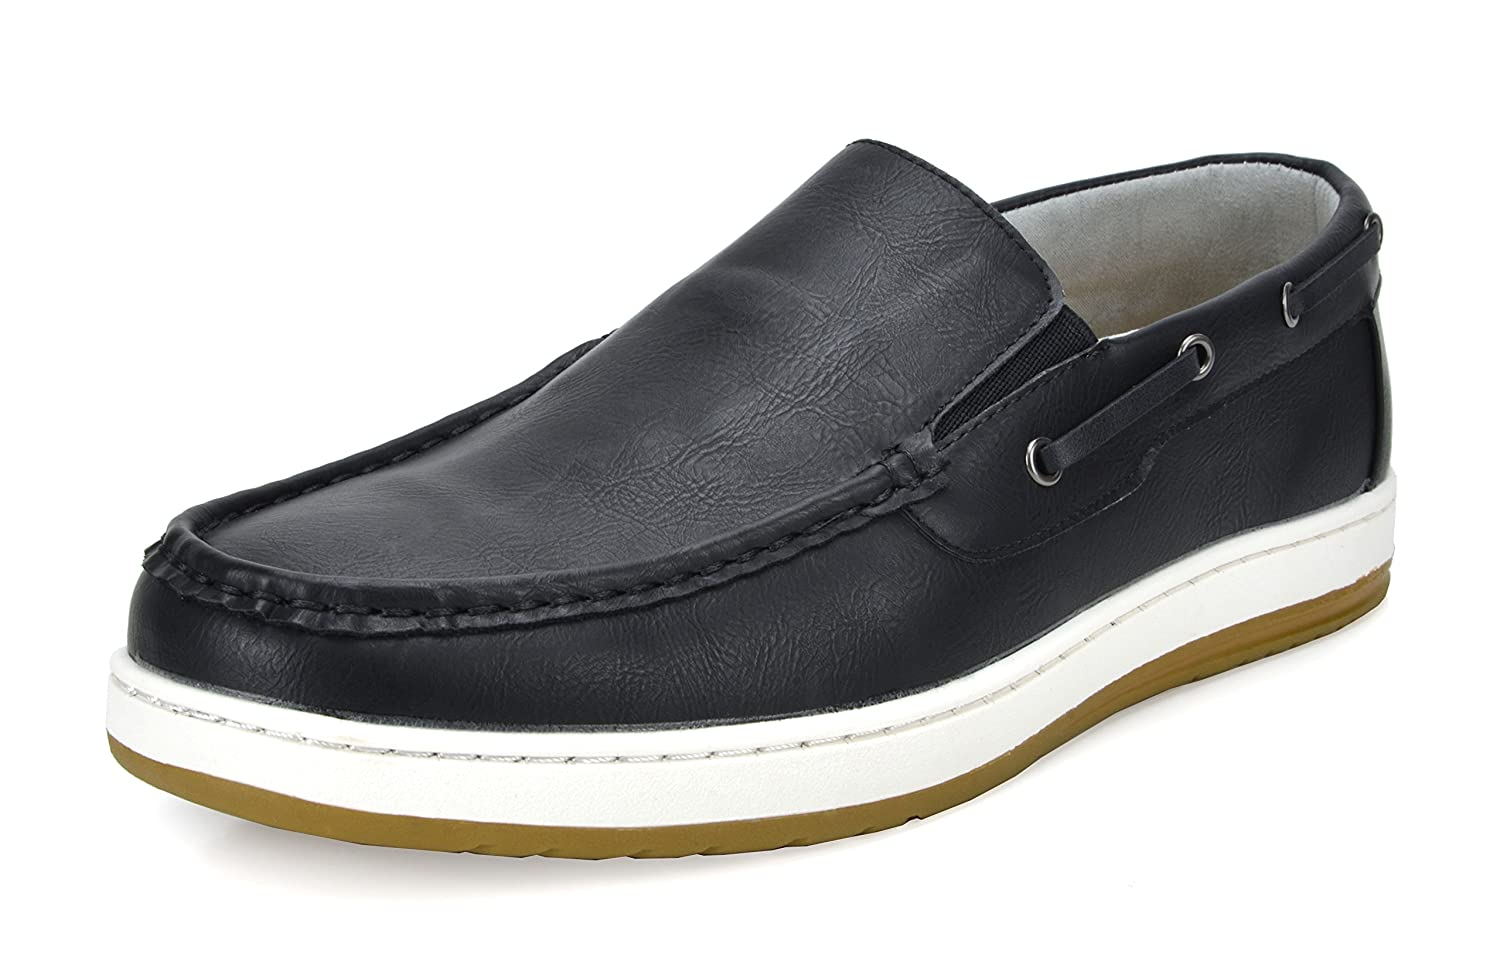 BRUNO MARC NEW YORK Men's Pitts Penny Loafers Moccasins Boat Shoes